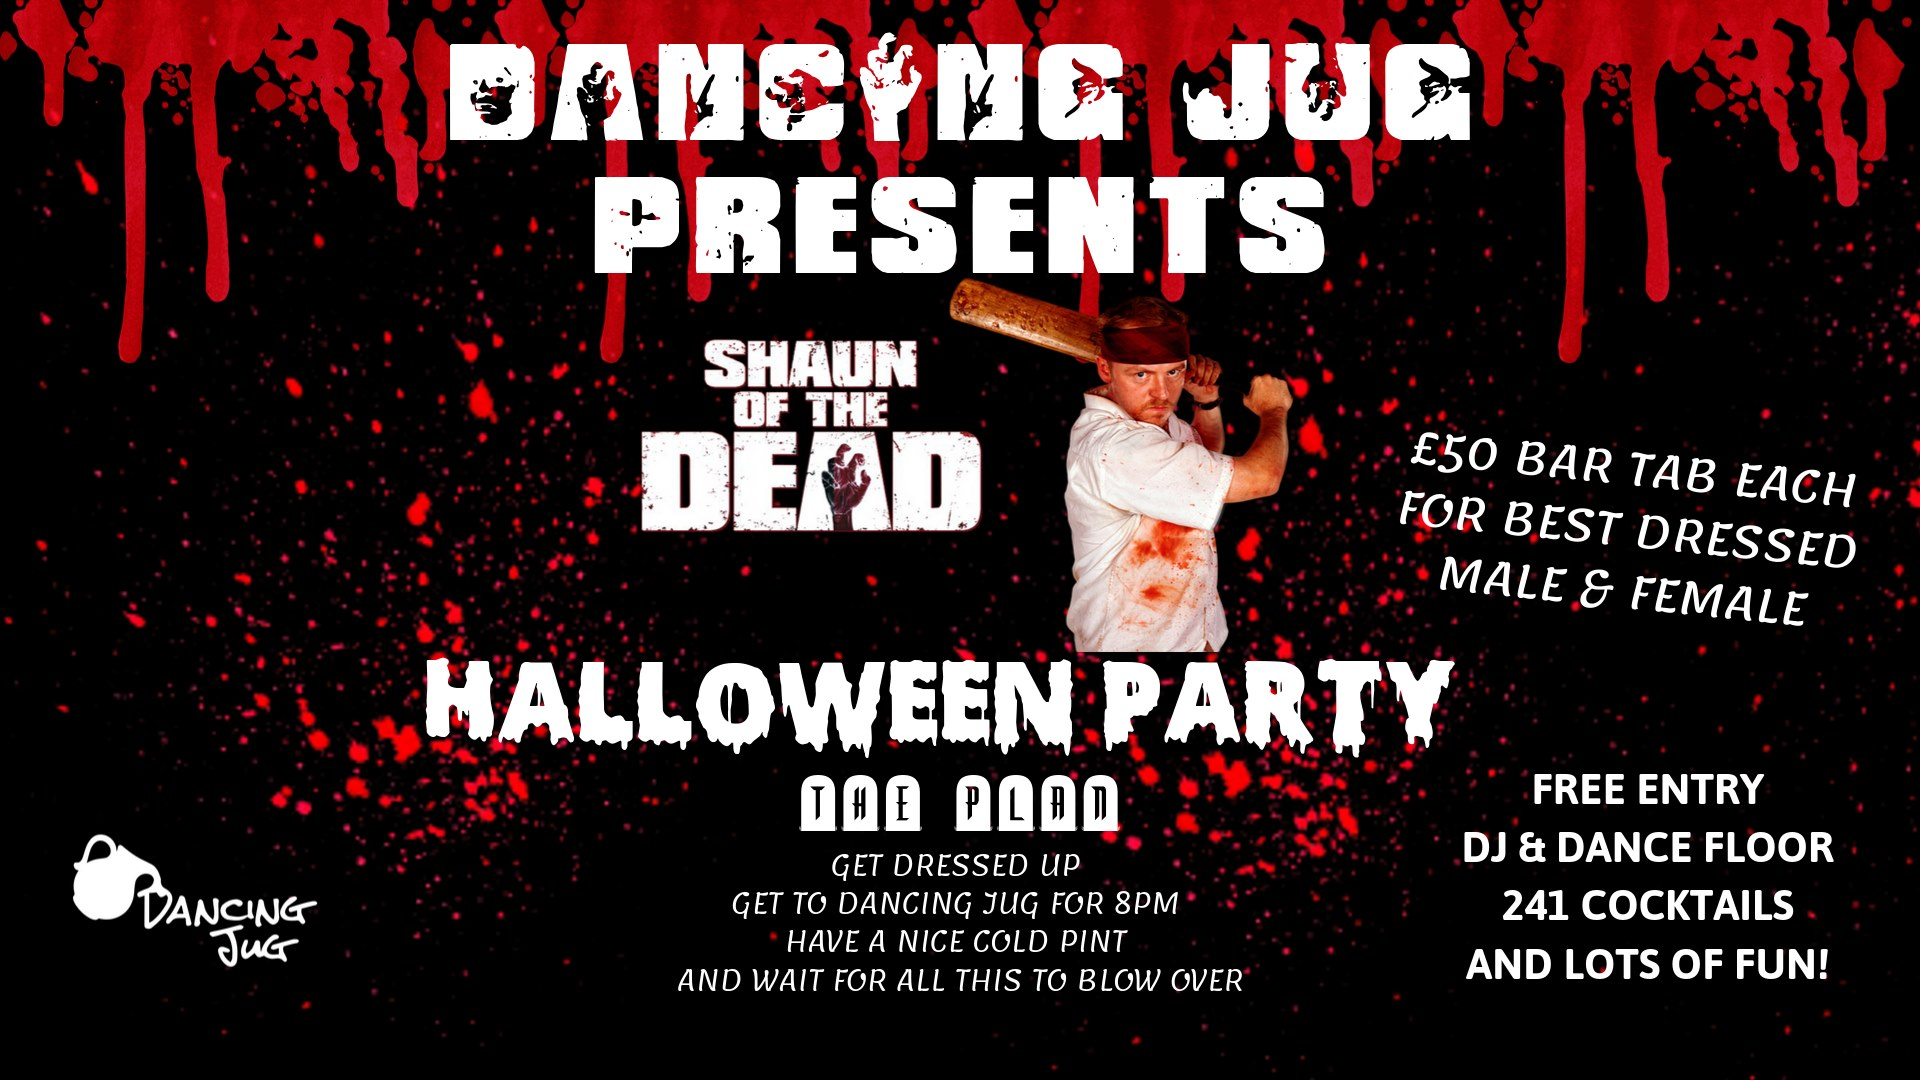 Shaun of the Dead Halloween Party